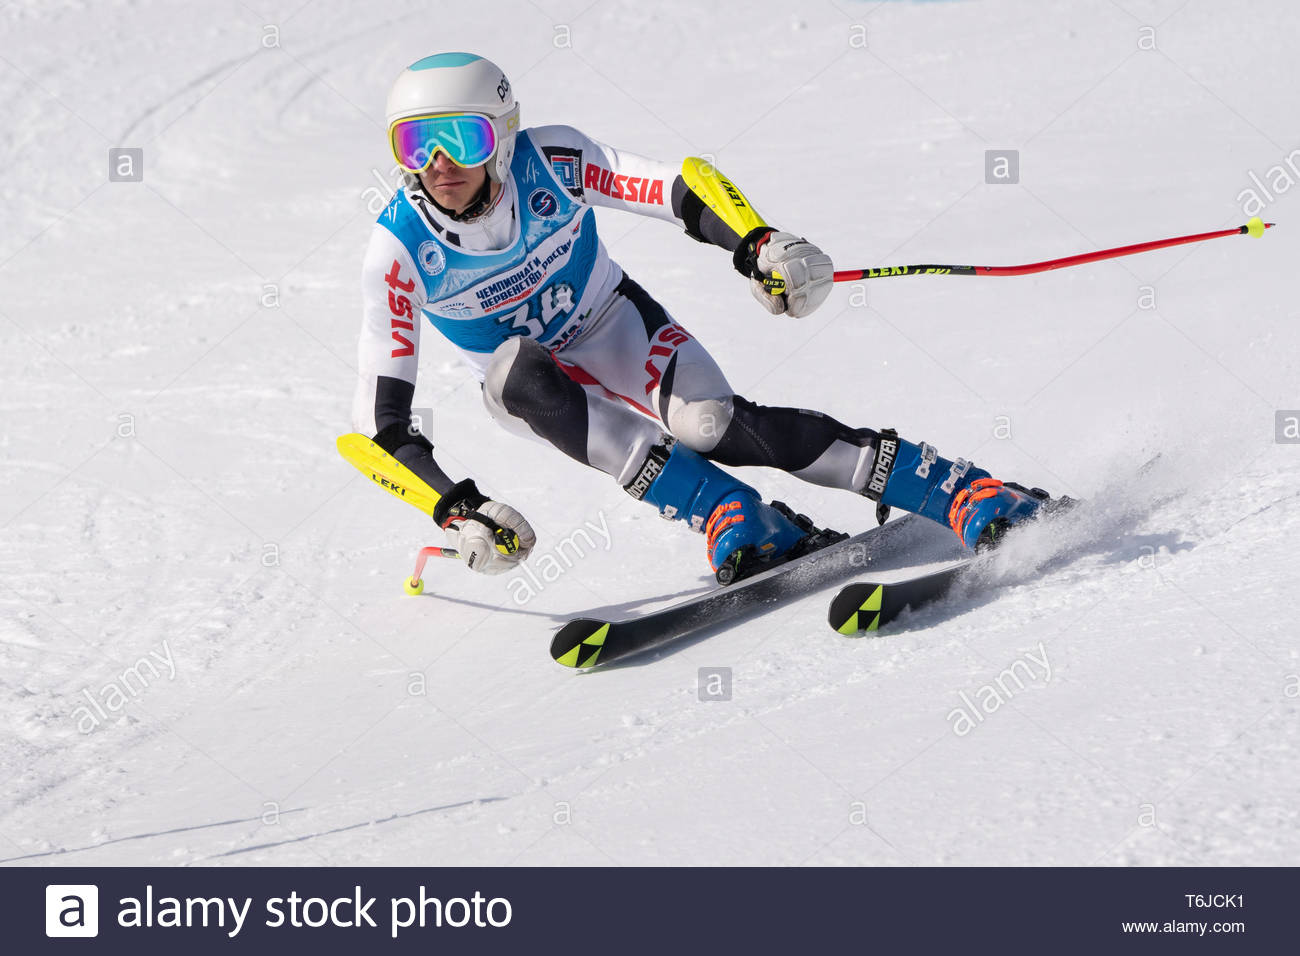 KAMCHATKA PENINSULA, RUSSIA - APR 1, 2019: Mountain skier Bilmak George (St. Petersburg) skiing down slope. Russian Alpine Skiing Cup, International S - Stock Image